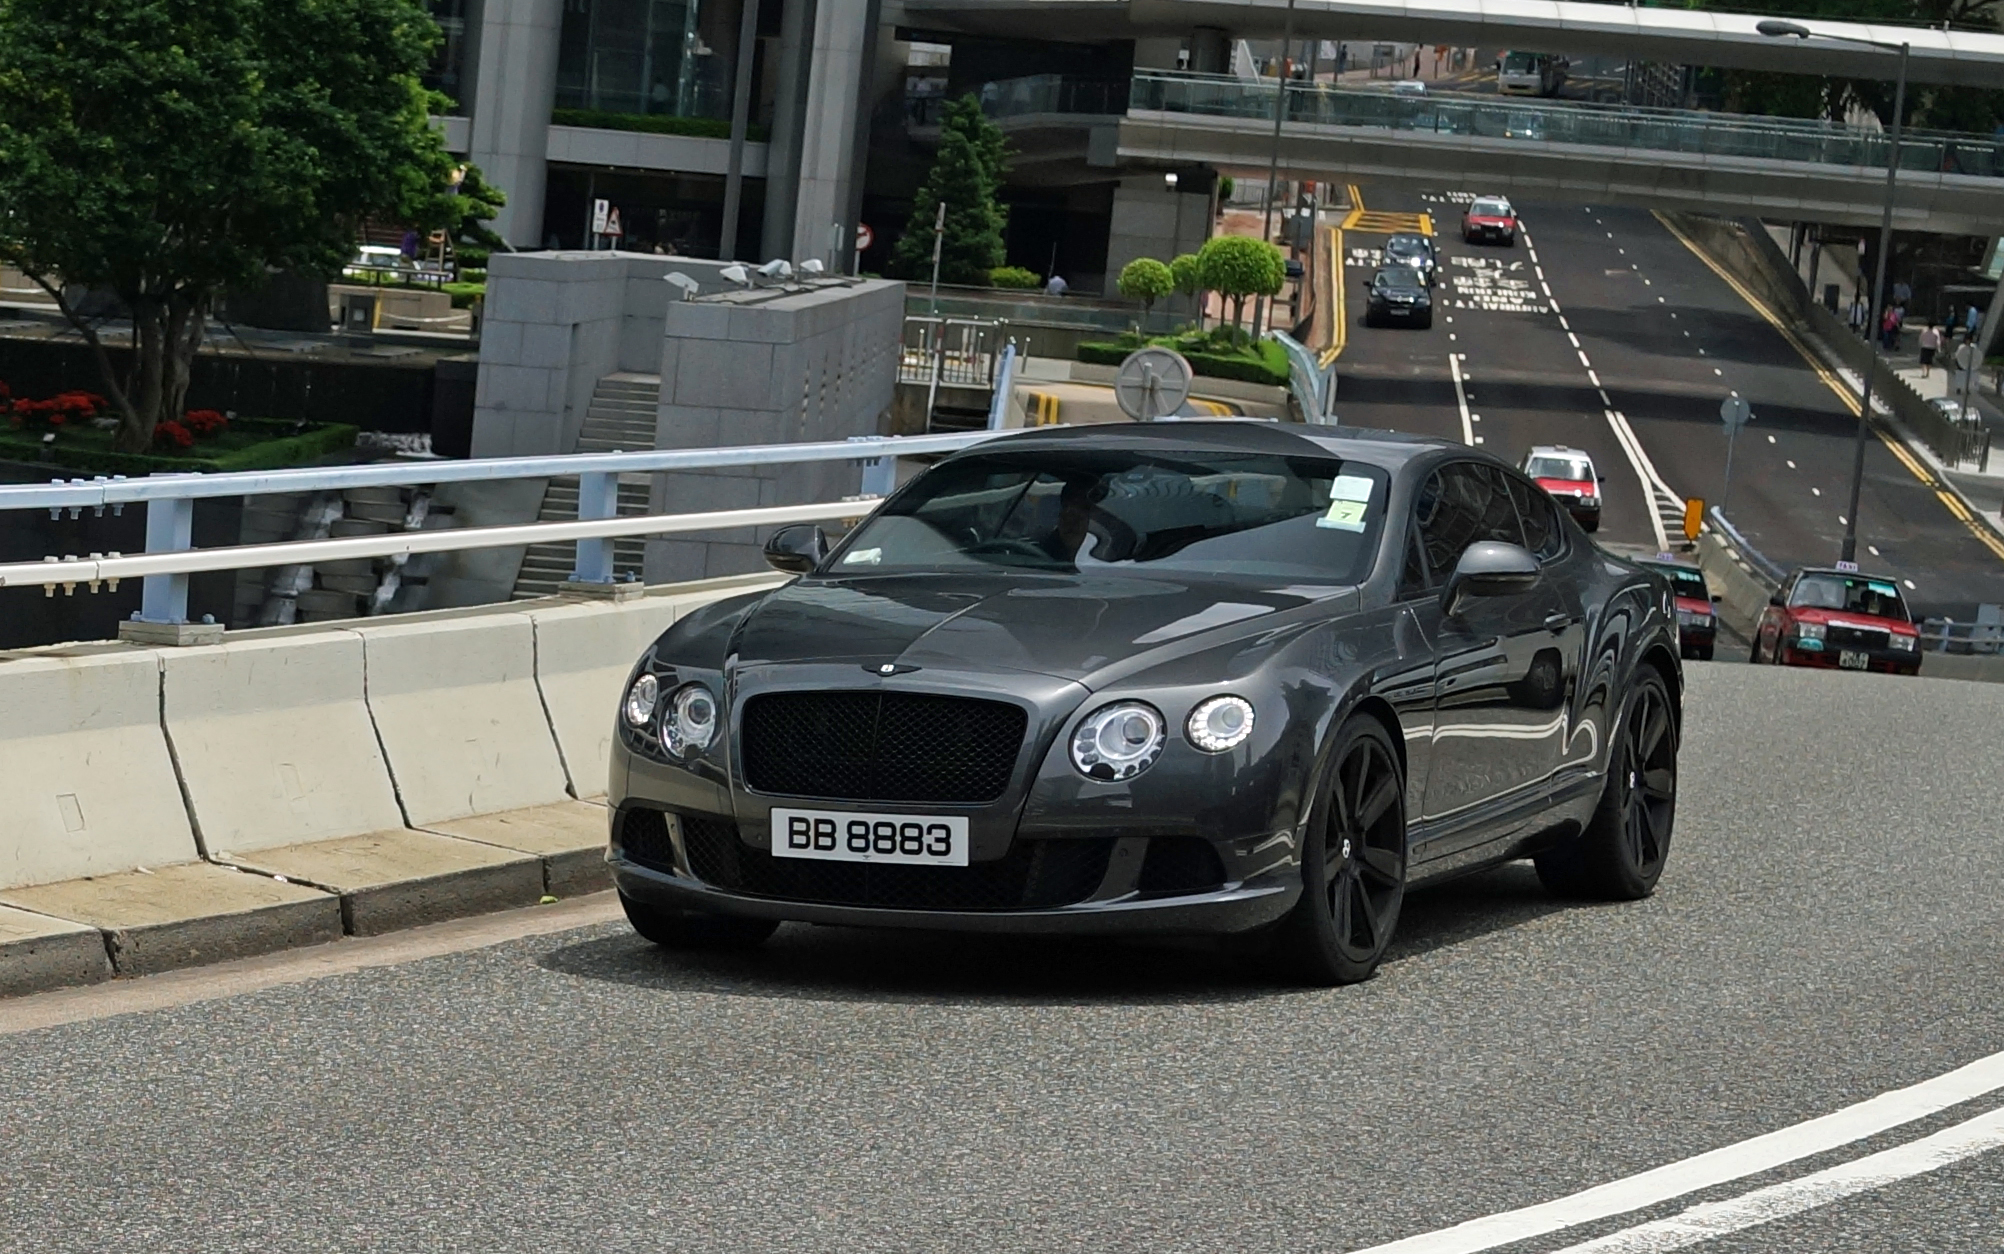 A gorgeous Bentley with a lucky number plate